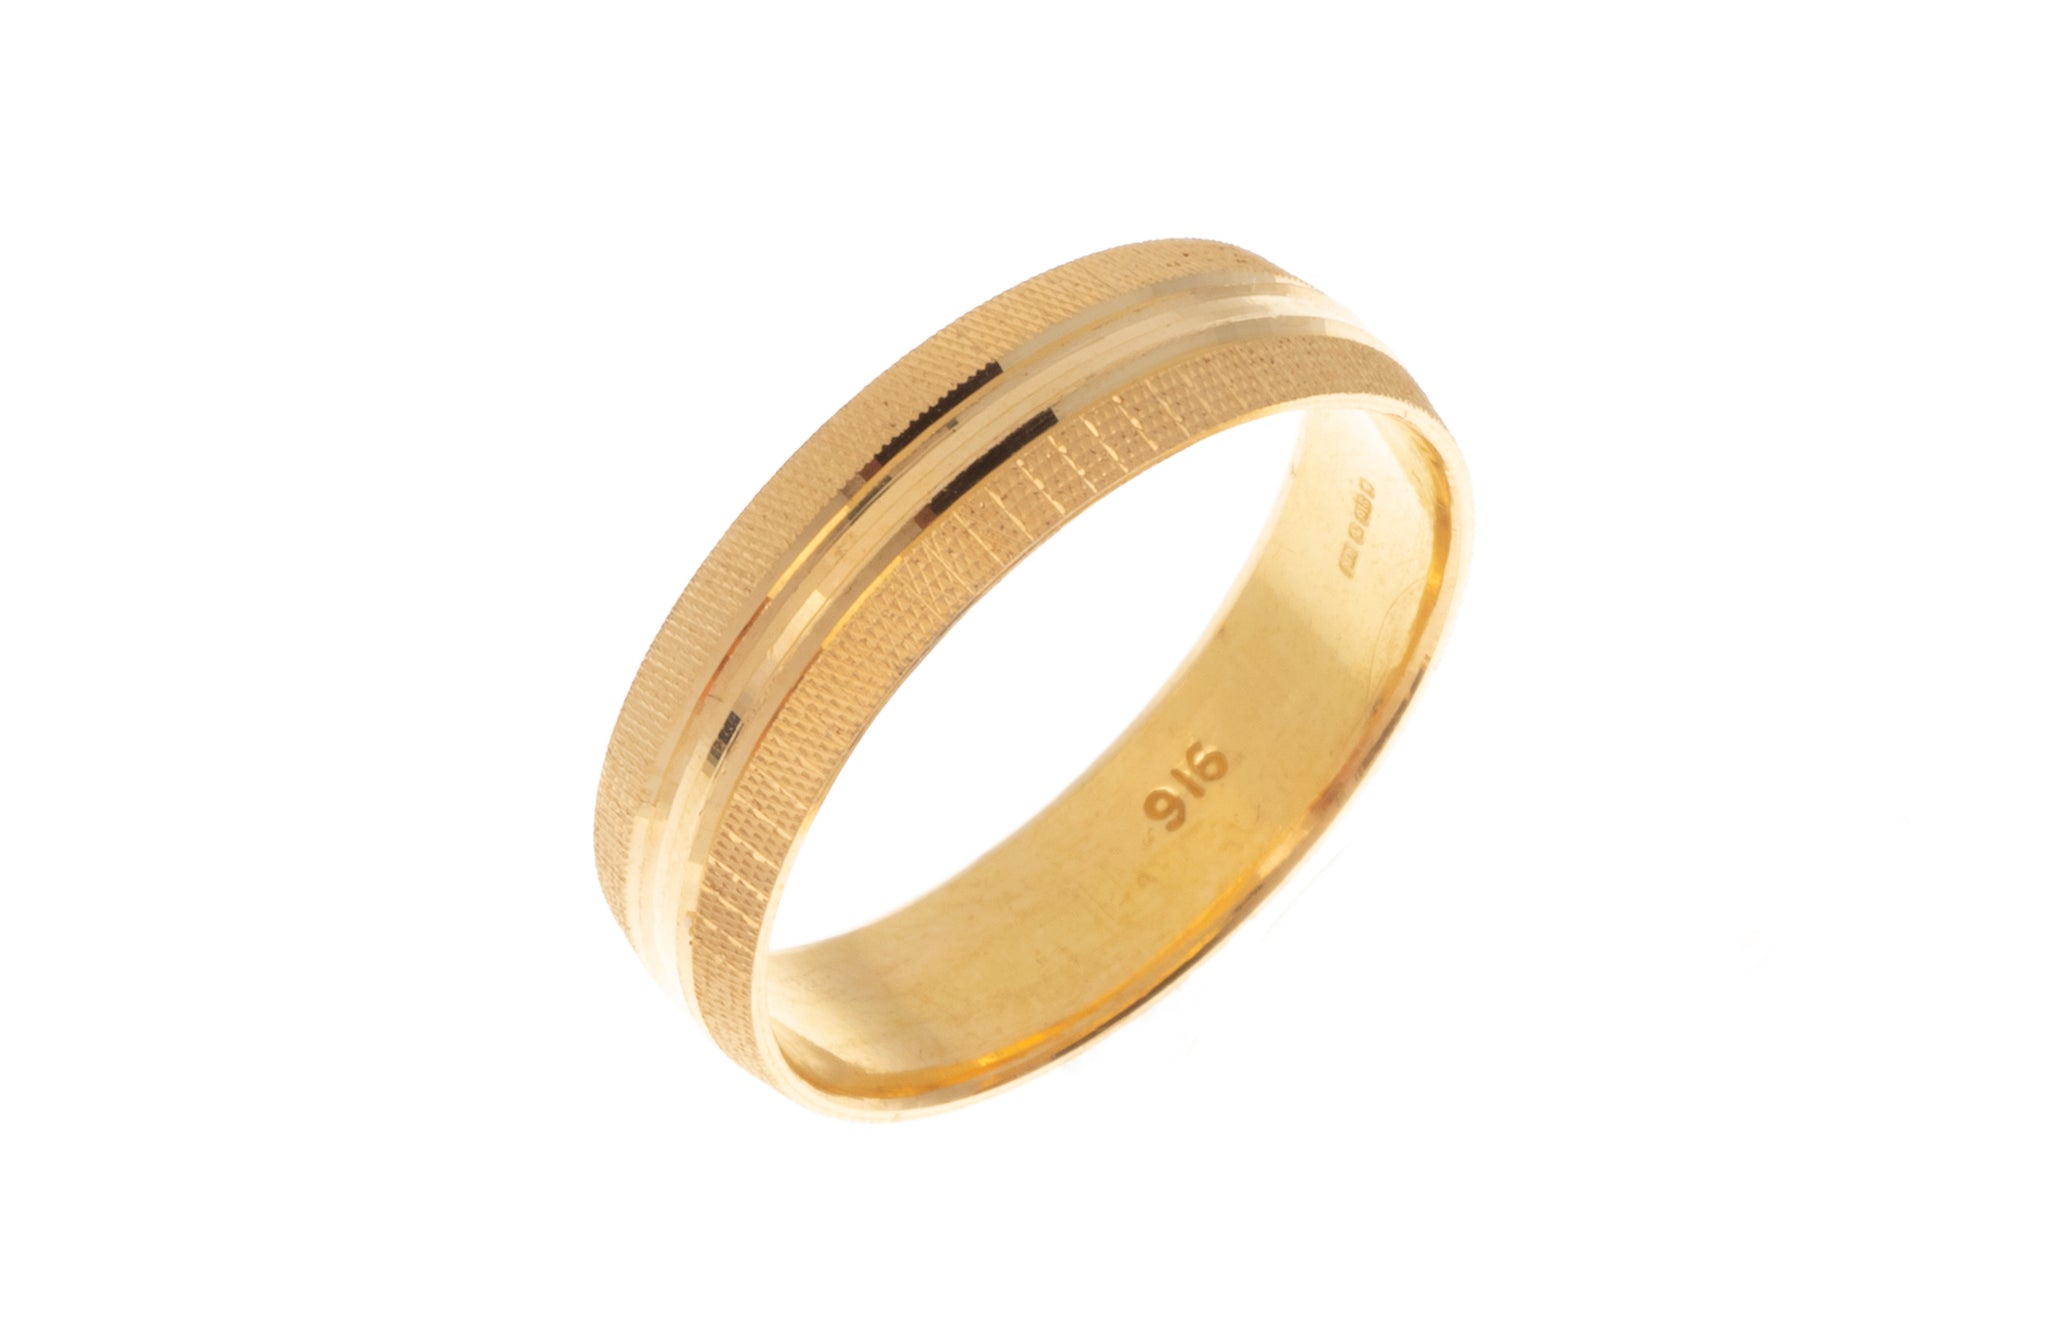 22ct Gold Wedding Band with Diamond Cut Design LR/GR-7362